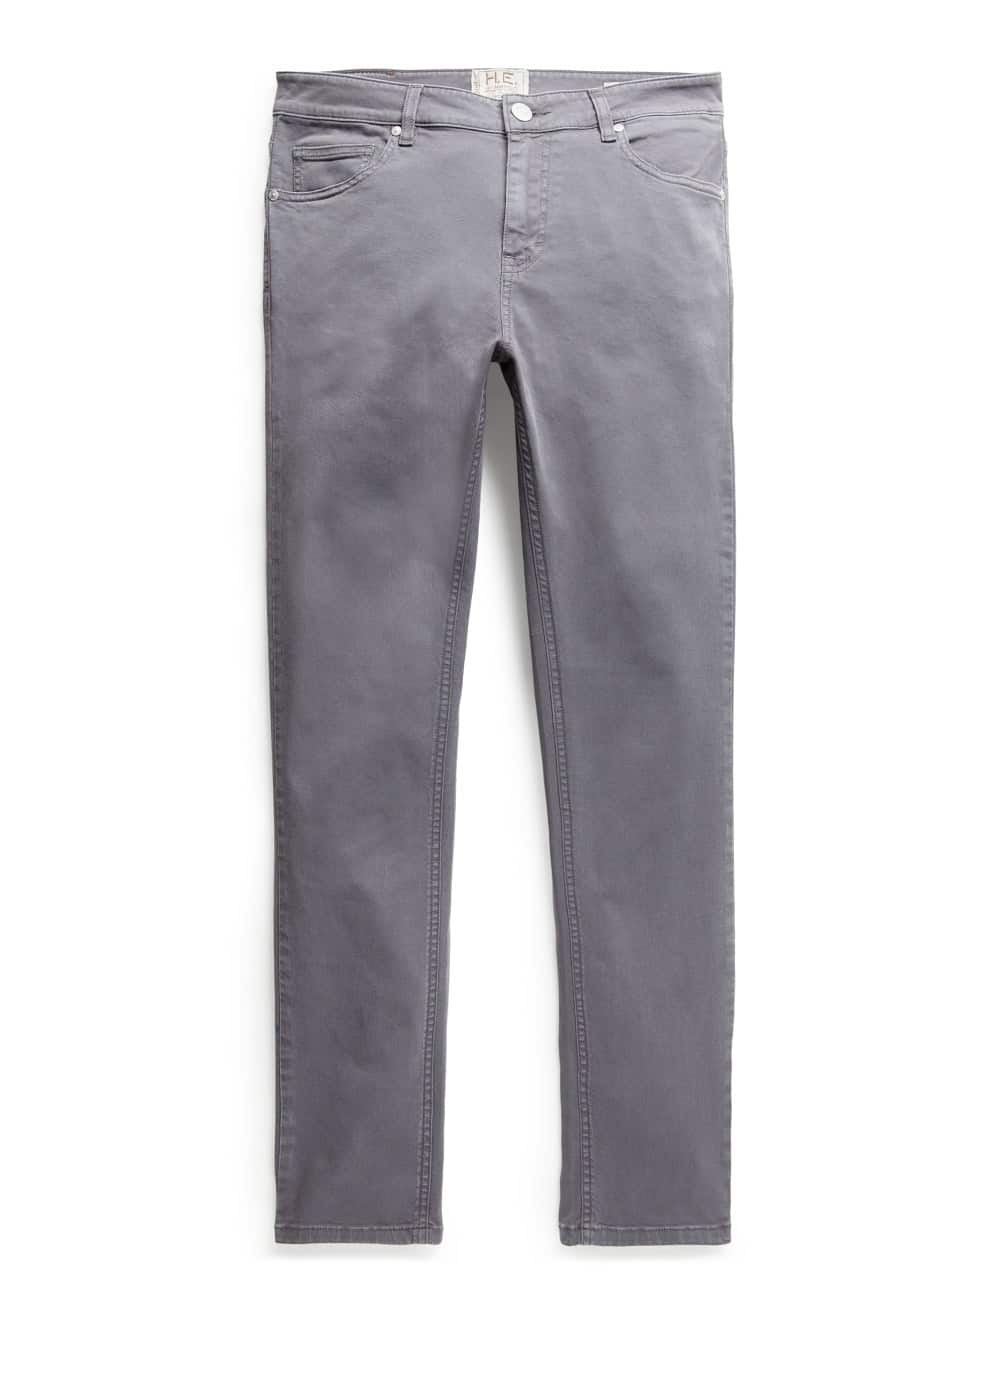 Super slim-fit grey Patrick jeans